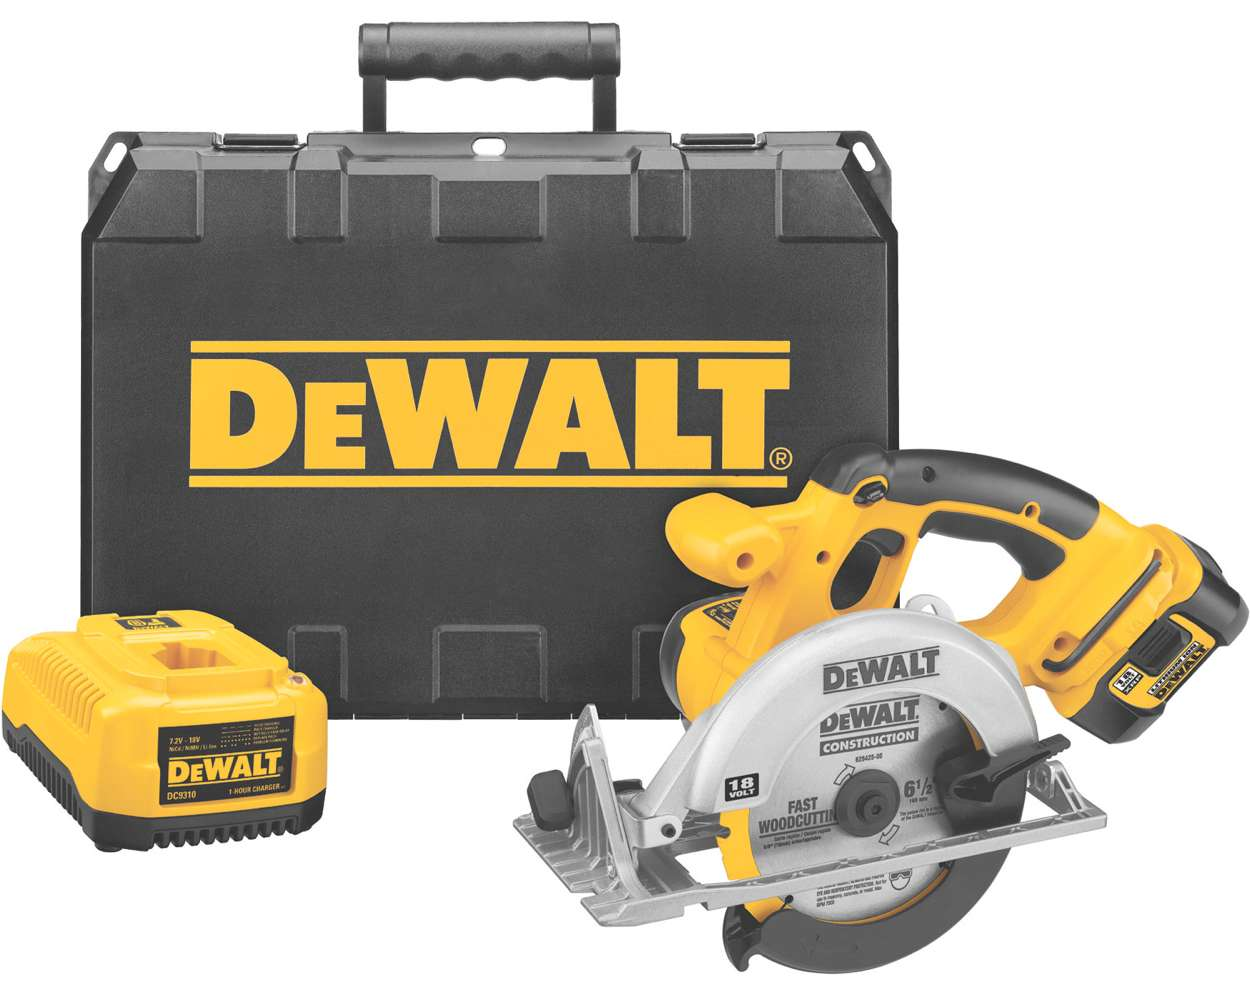 View furthermore Dewalt Dc390k 18 Volt Ni Cad 612 Inch moreover 160743833283 in addition 091 Electr Tools further 150922 Motorcycles Boat Snap On Tools S 278336. on de walt 18 volt circular saw